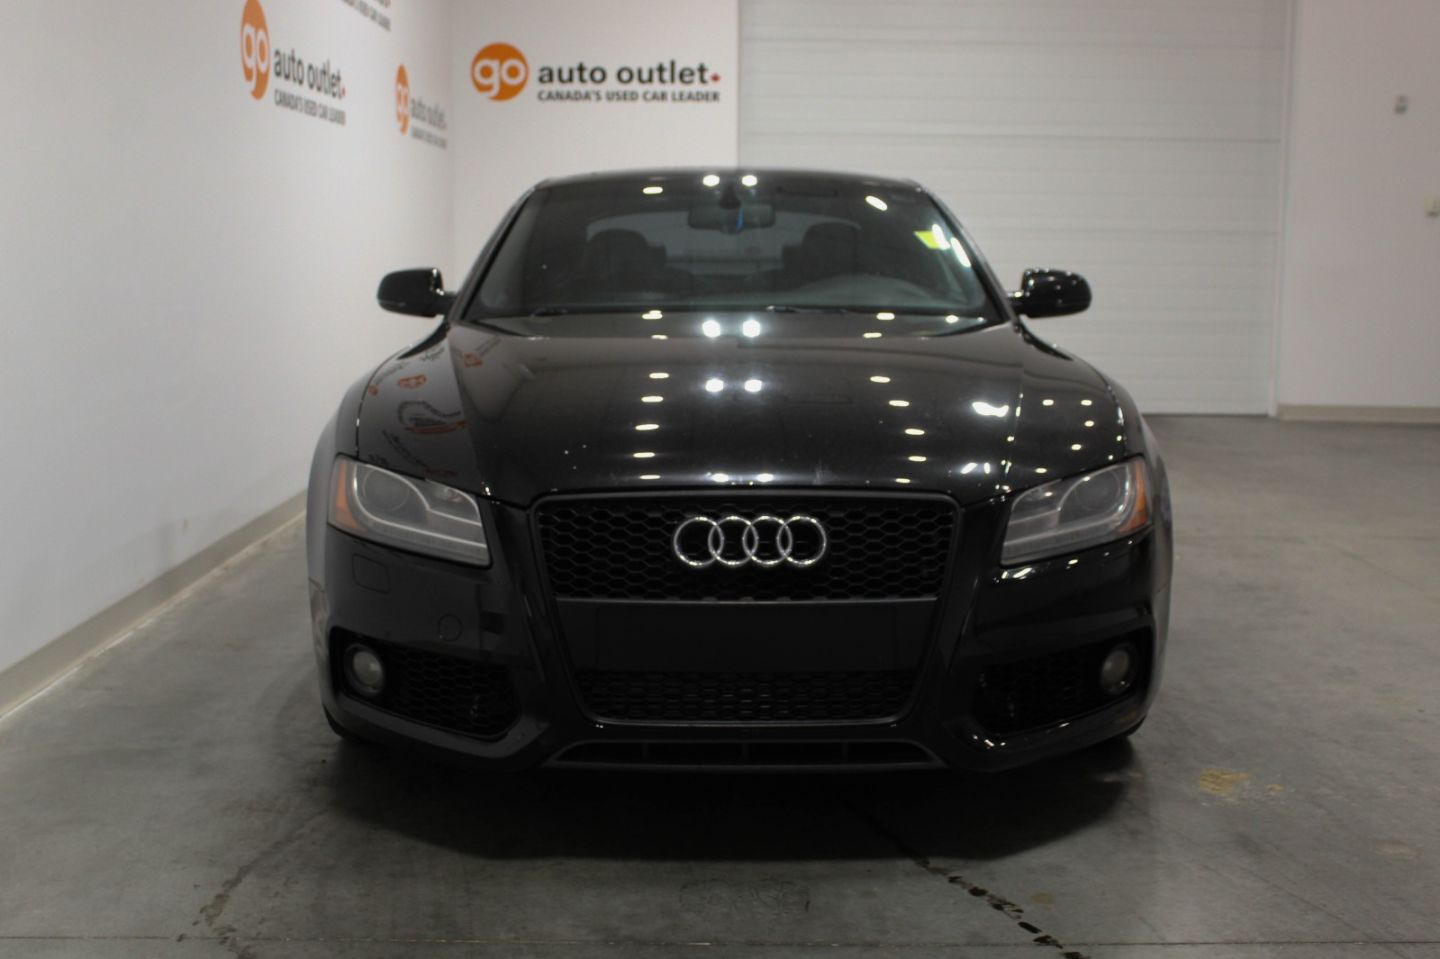 2011 Audi A5 2.0L Premium Plus for sale in Edmonton, Alberta